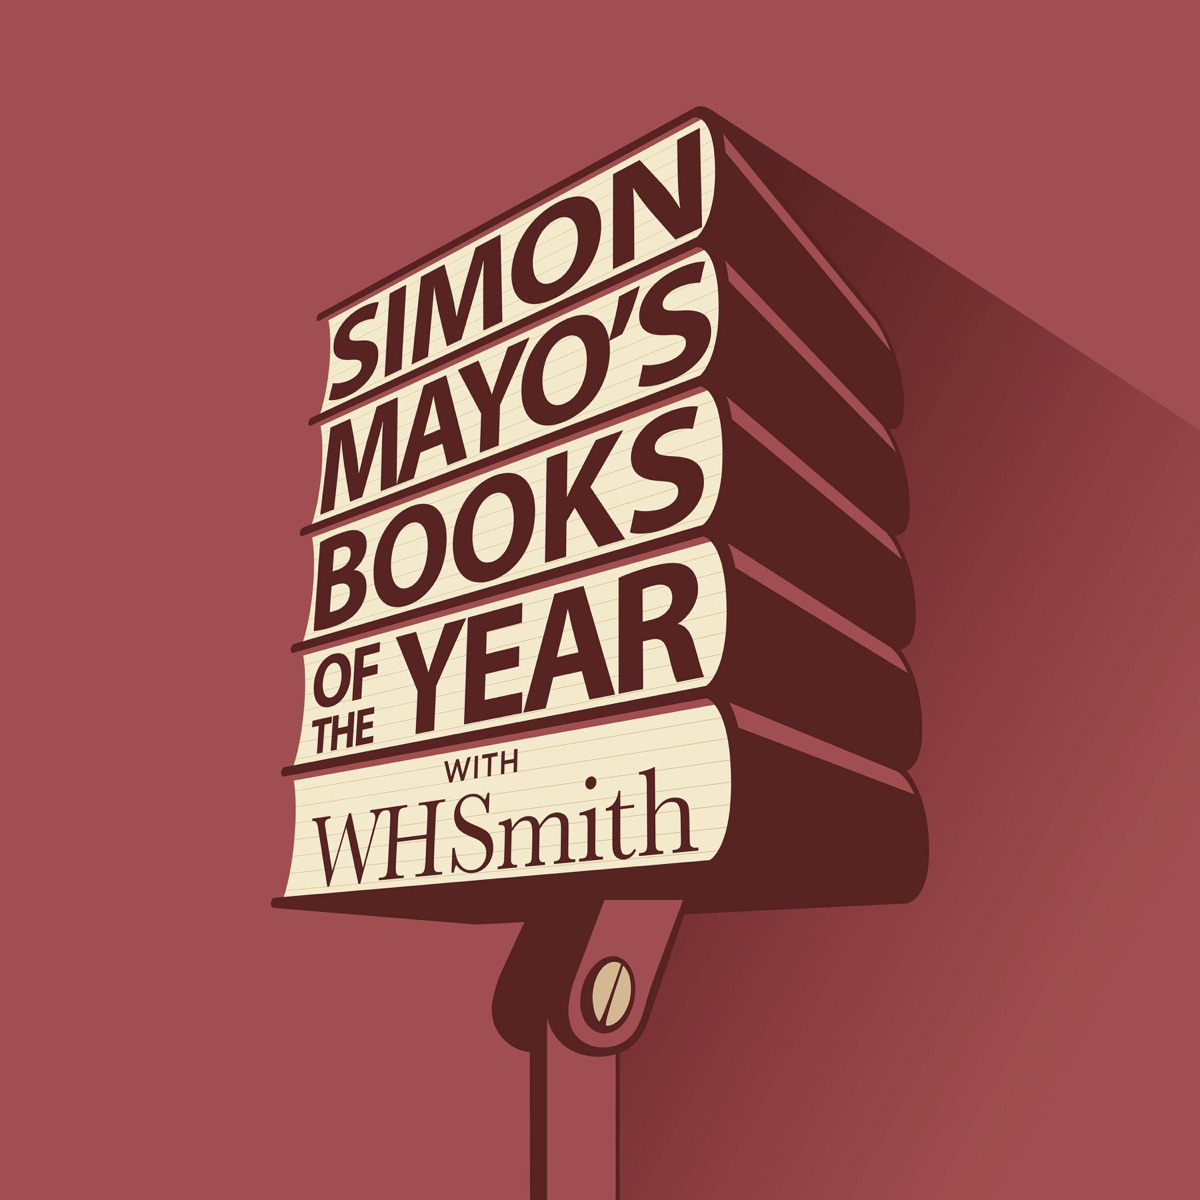 Simon Mayo's Books Of The Year